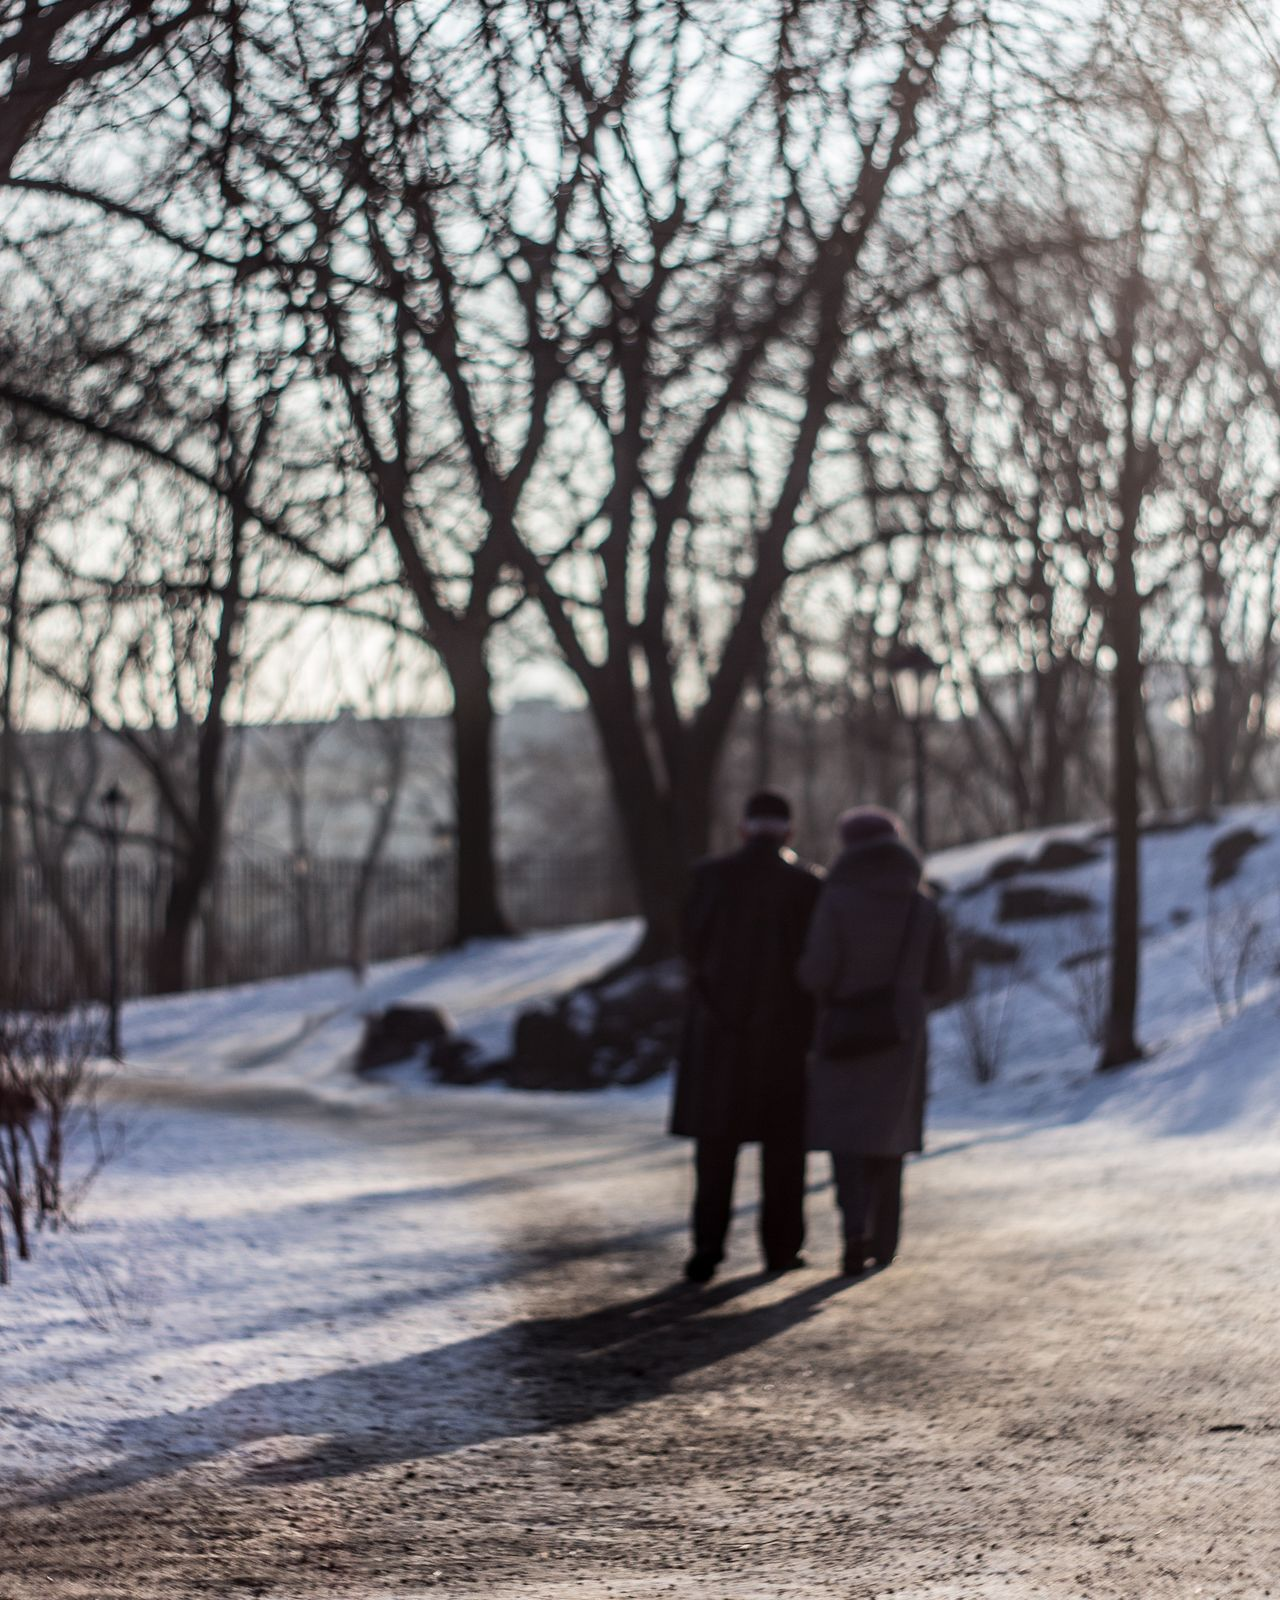 Winter Two People Walking Bare Tree Rear View Nature Togetherness Men Bonding Day Women Beauty In Nature Outdoors Full Length Cold Temperature Tree Leisure Activity Naturephotography Palac Krasinskich WarsawCity Photography Cloud - Sky City Love Warm Clothing